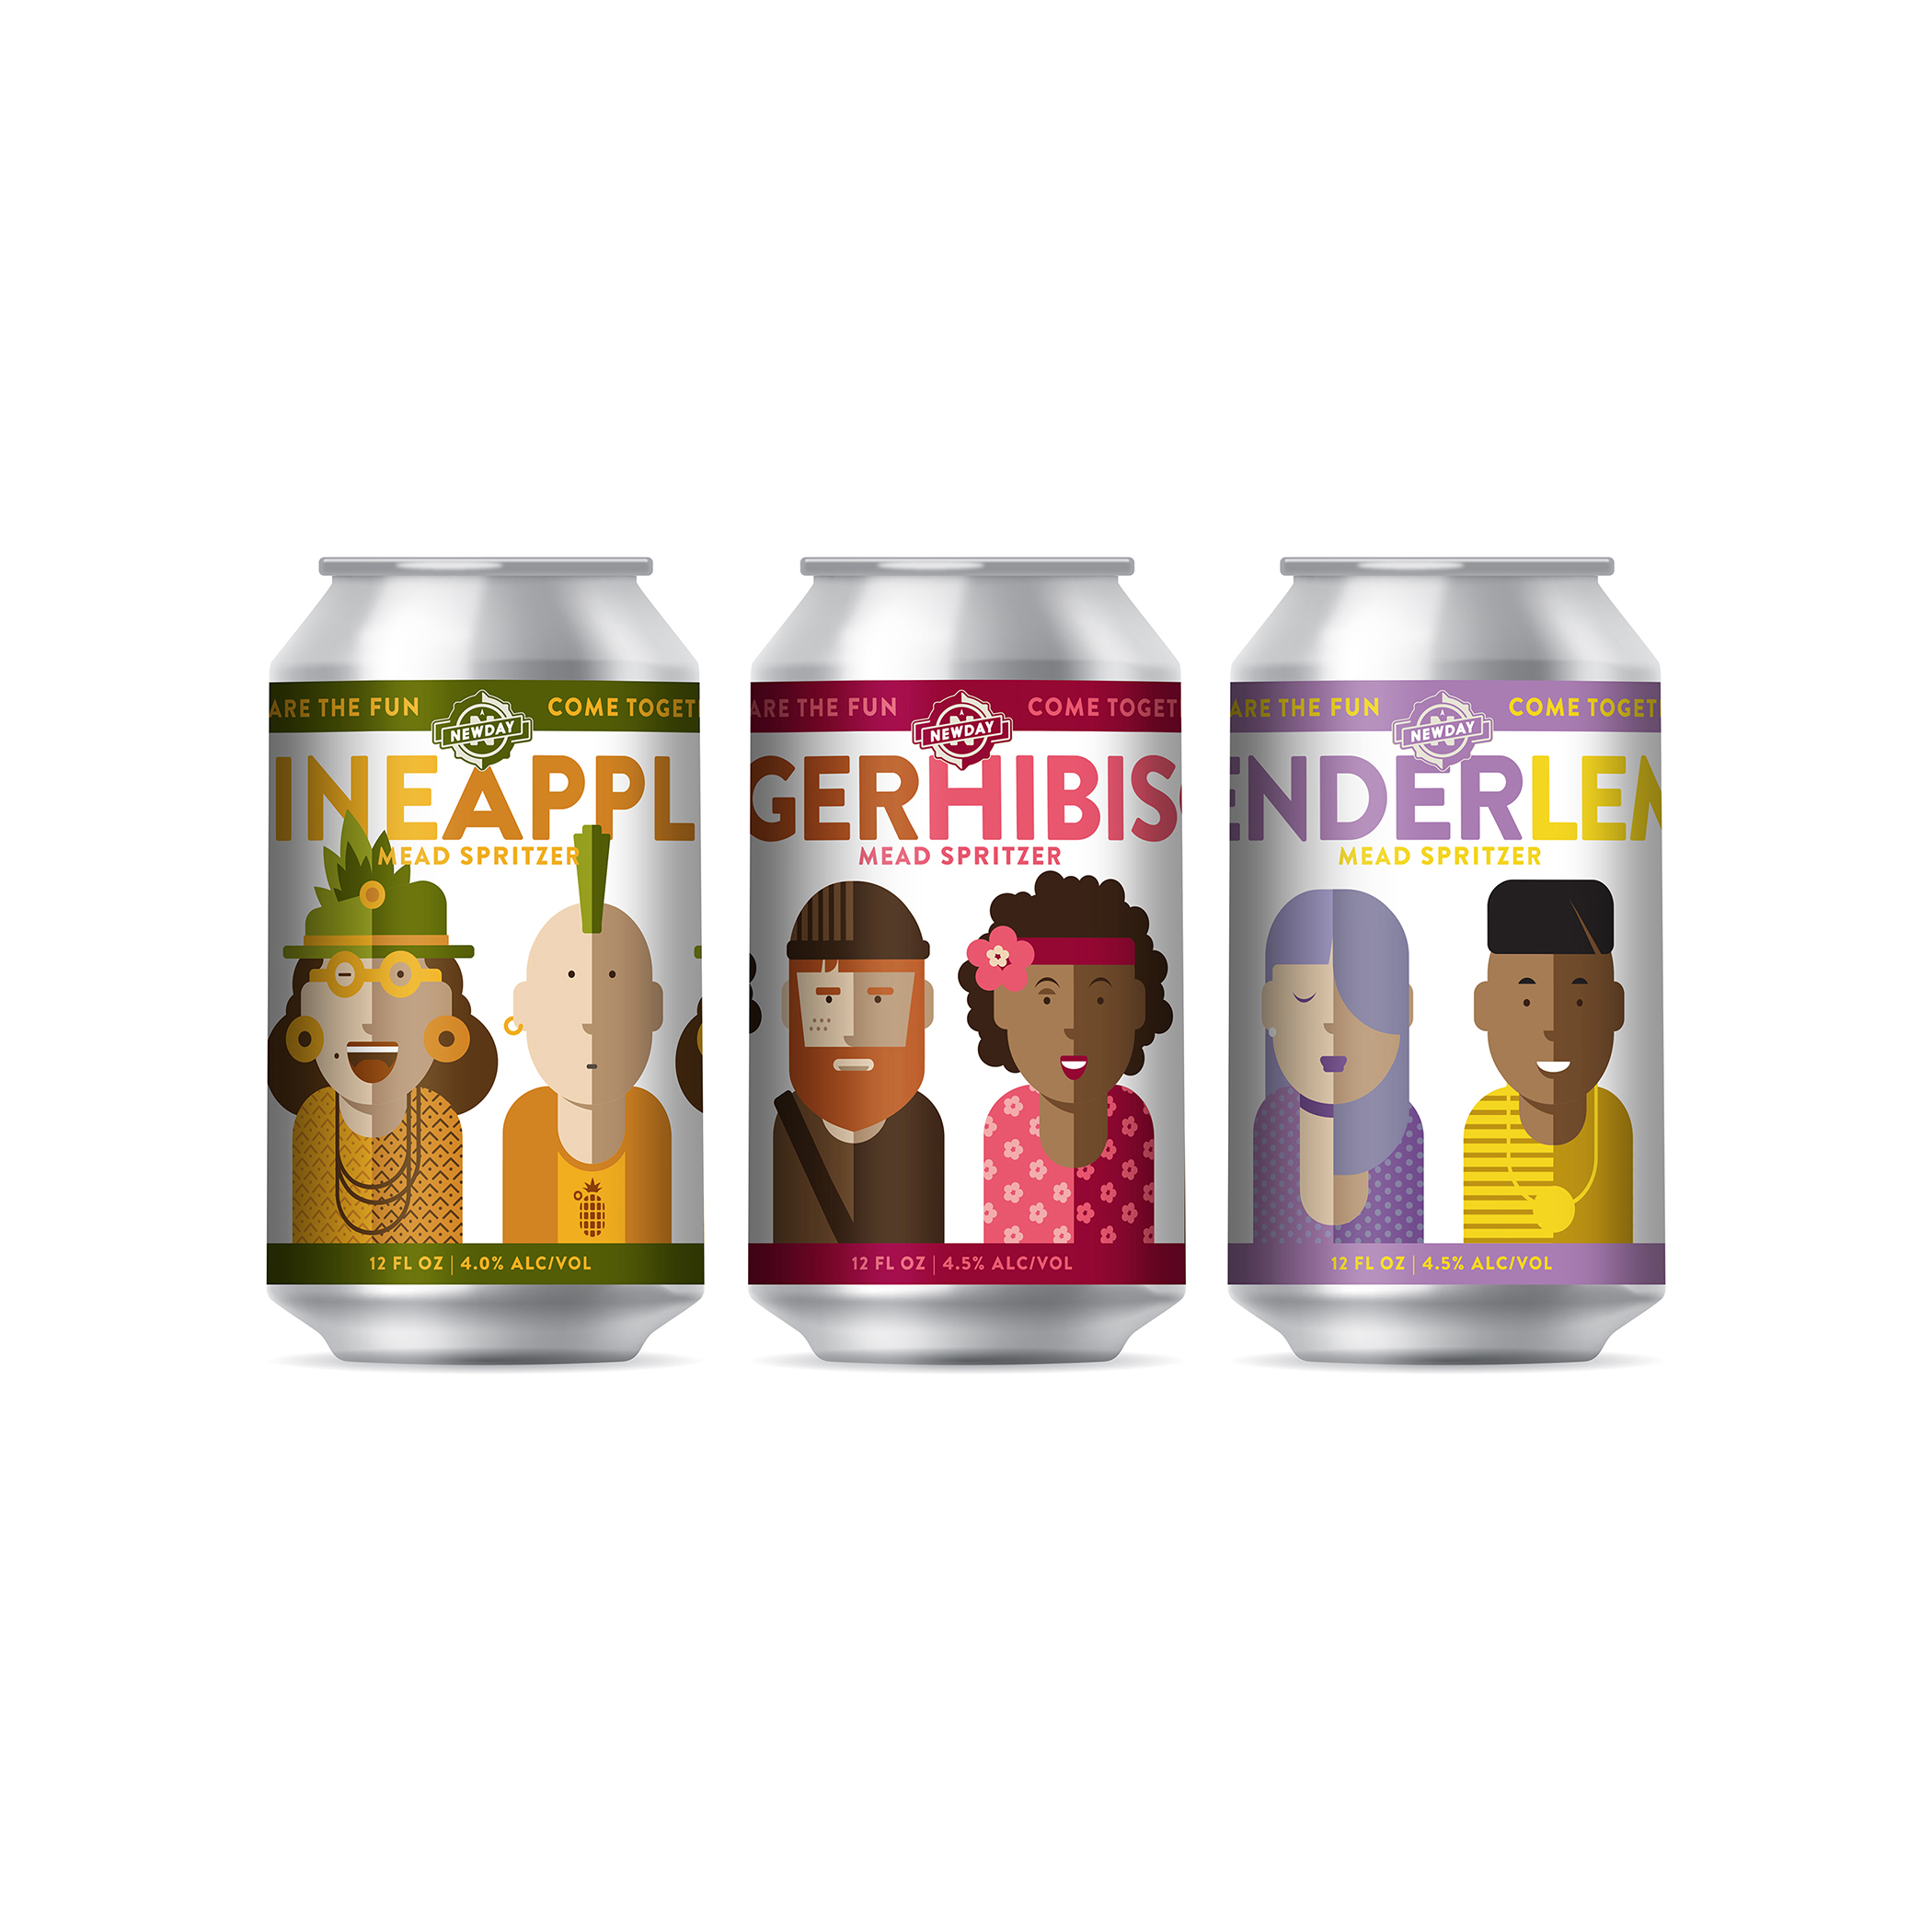 Branding and Can Designs for New Line of Mead Spritzers for NewDay Craft Mead and Cider / World Brand Design Society